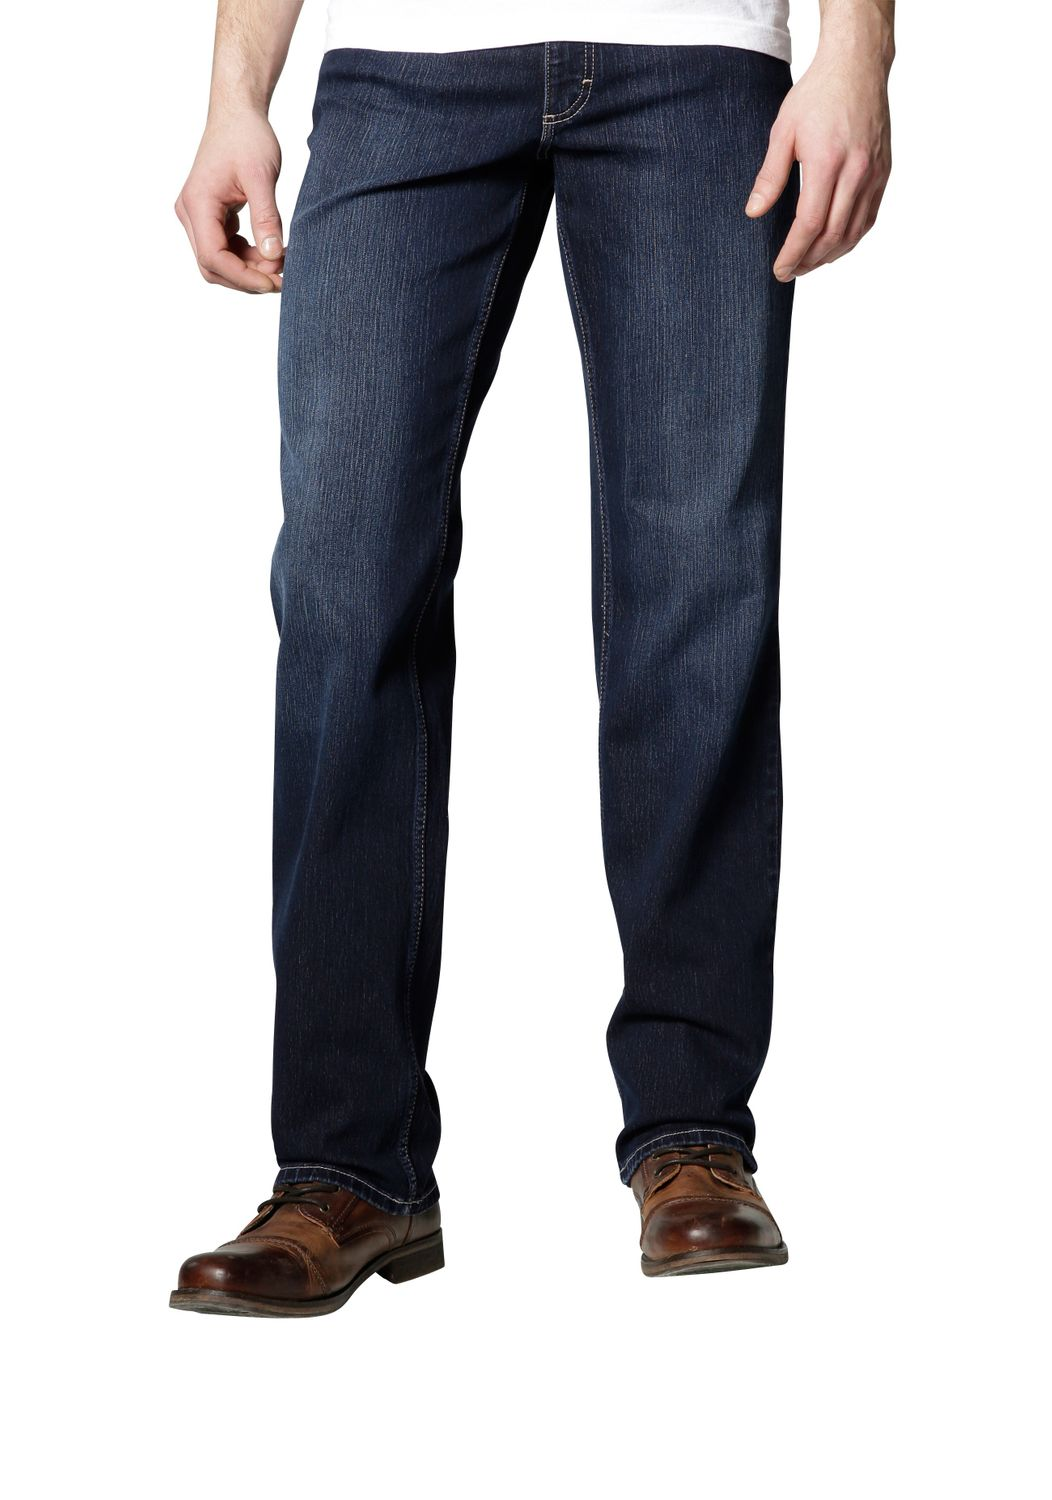 Mustang -  Herren 5-Pocket Jeans, Medium rise/Straight Leg, Farbe old stone used, Big Sur (3169-5126-580) 001